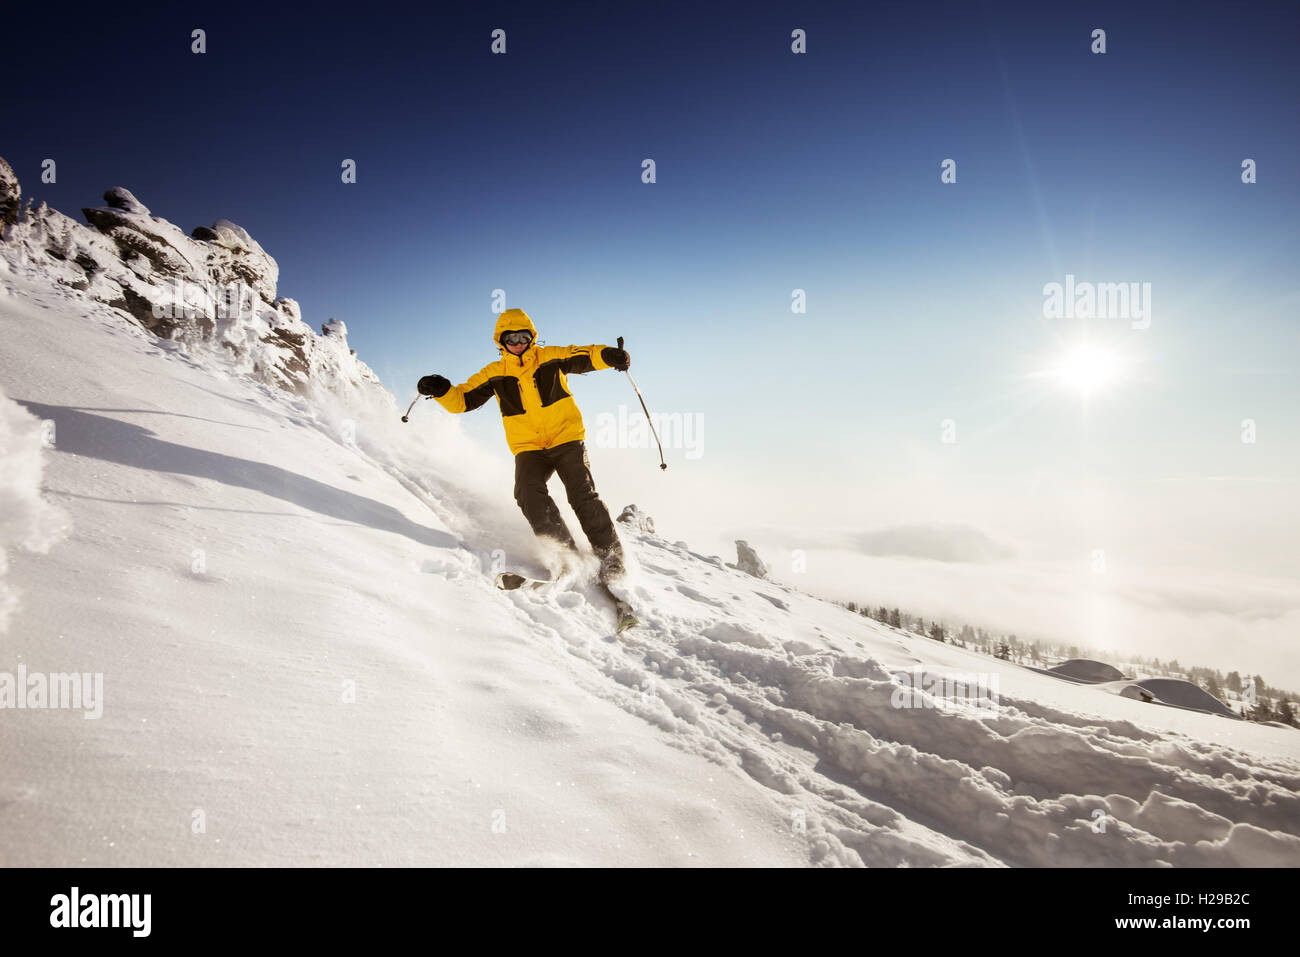 Snowboarder rides on blue sky backdrop in mountains - Stock Image